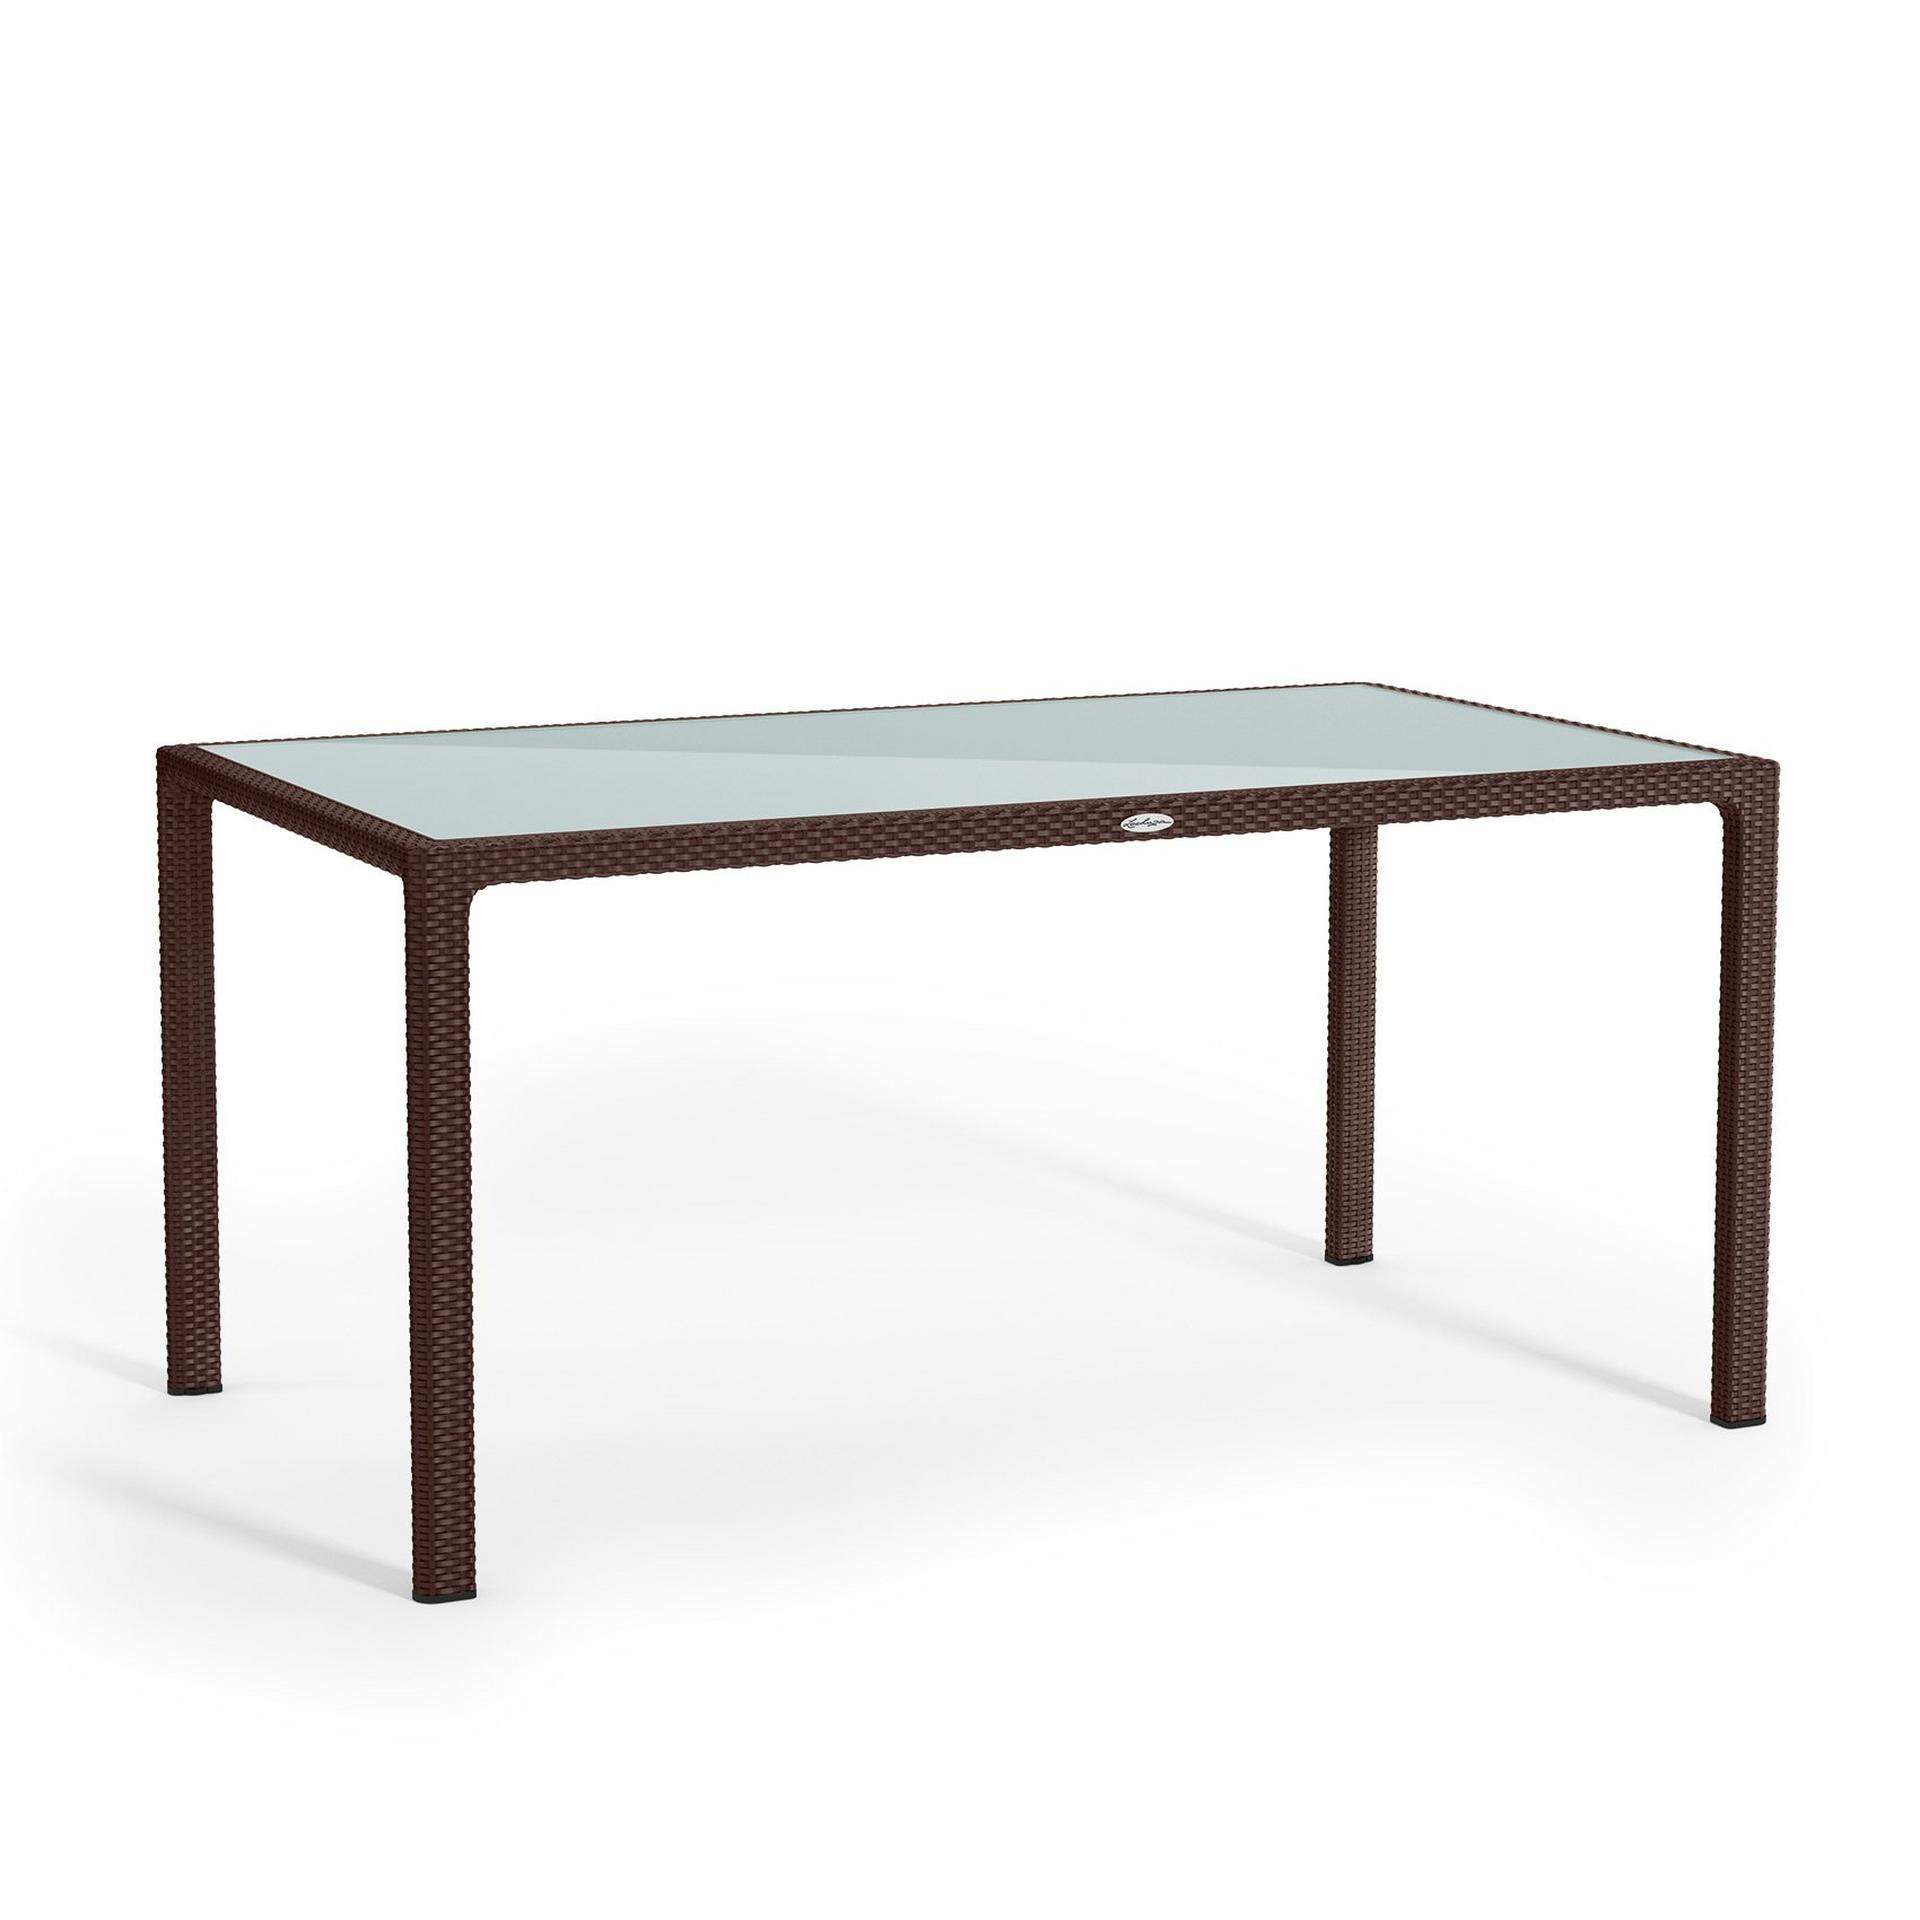 Grande table moka